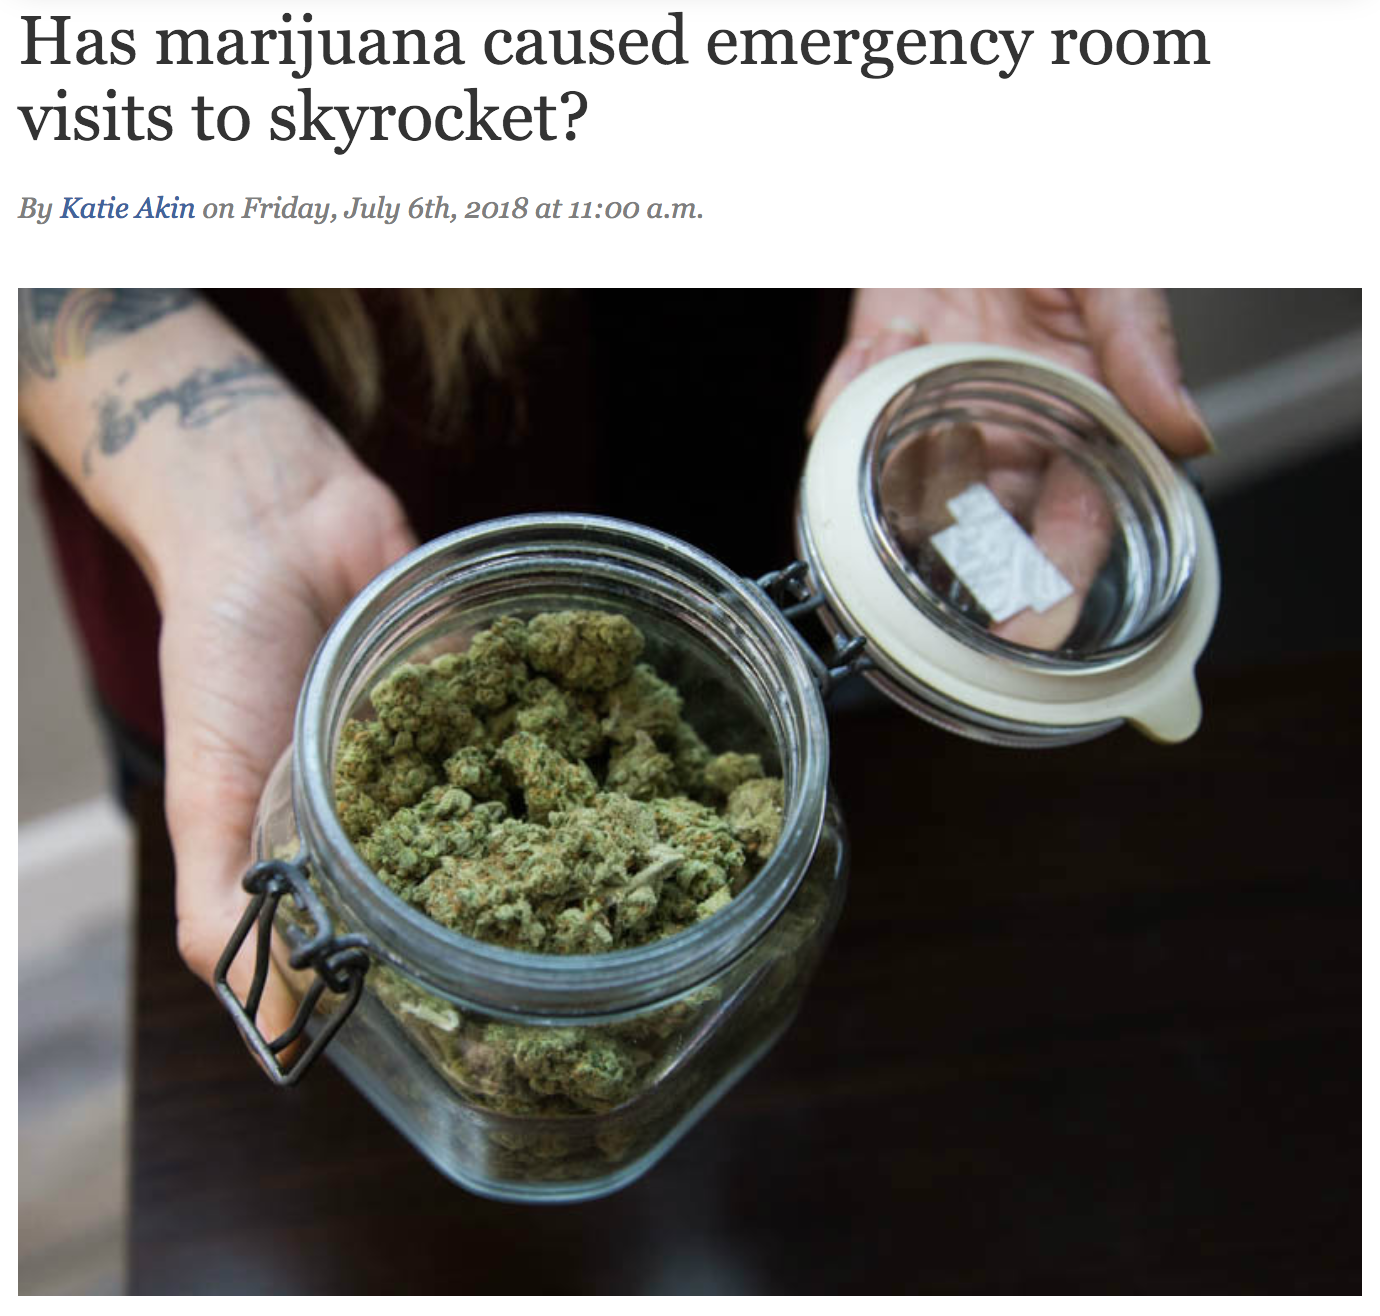 Has marijuana caused emergency room visits to skyrocket?